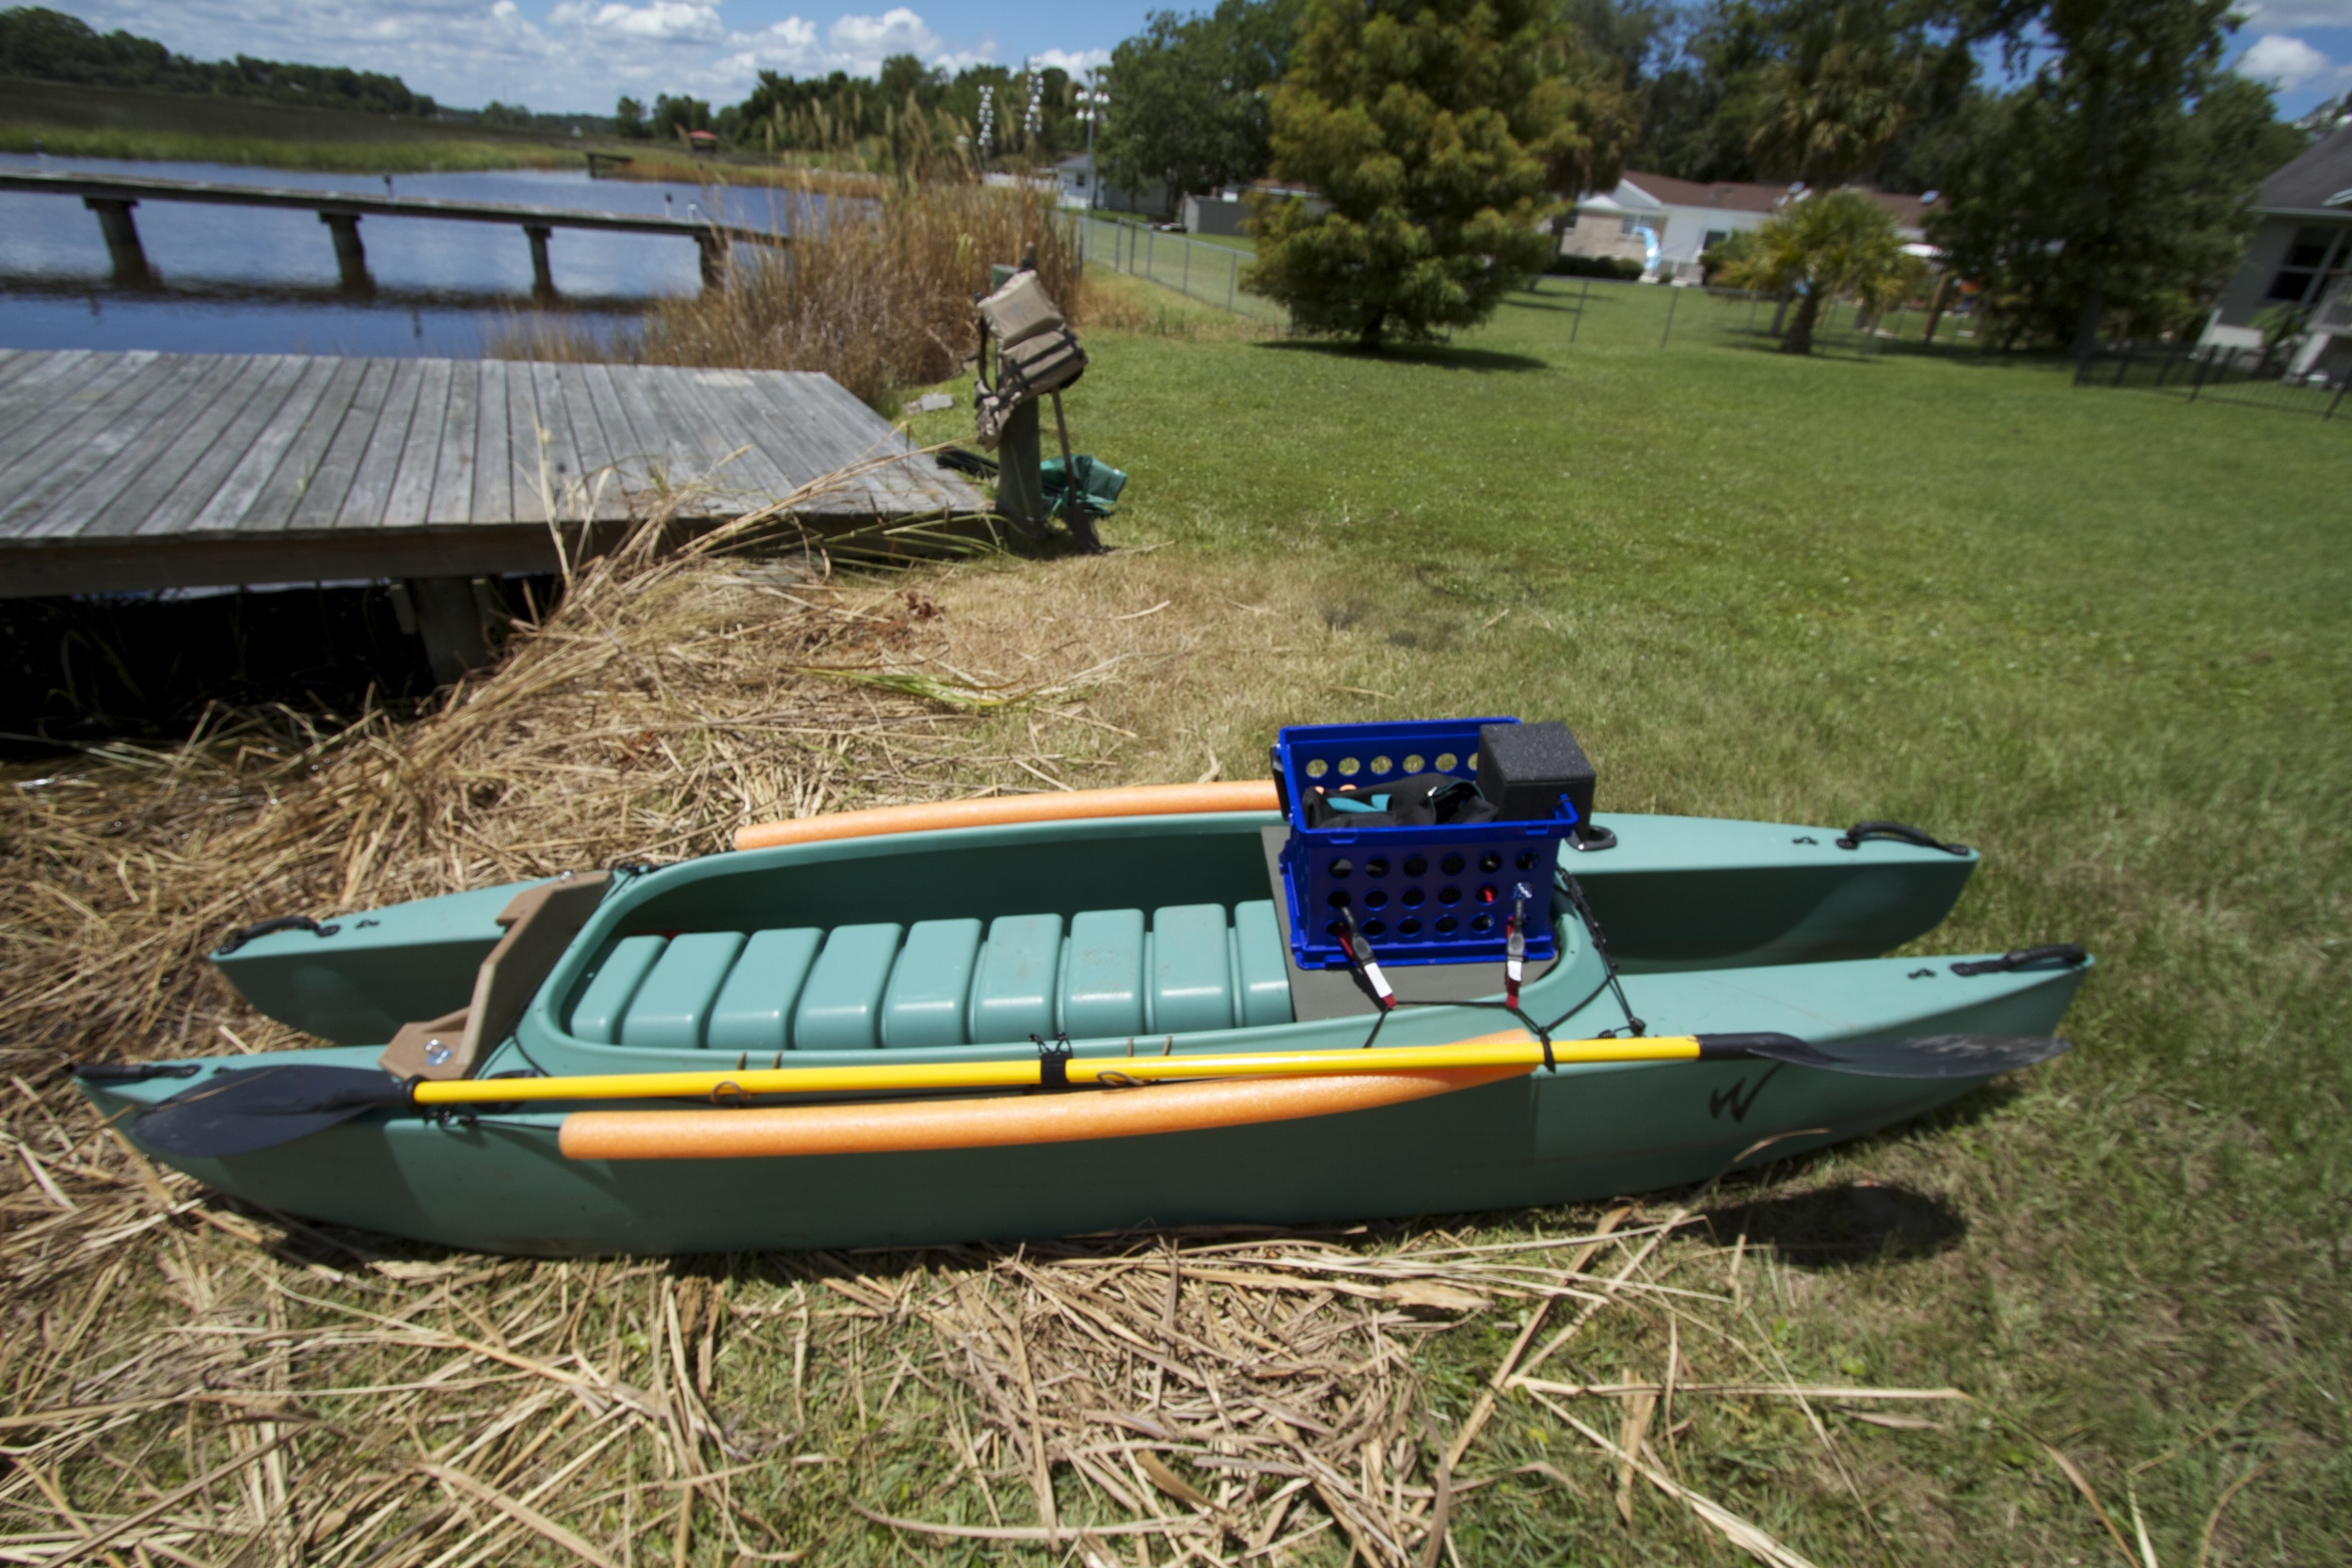 My new Wavewalk Kayak with initial outfitting. Length 11.4', width 28.5 in, wt 59 lbs. Max recommended load 360 lbs.